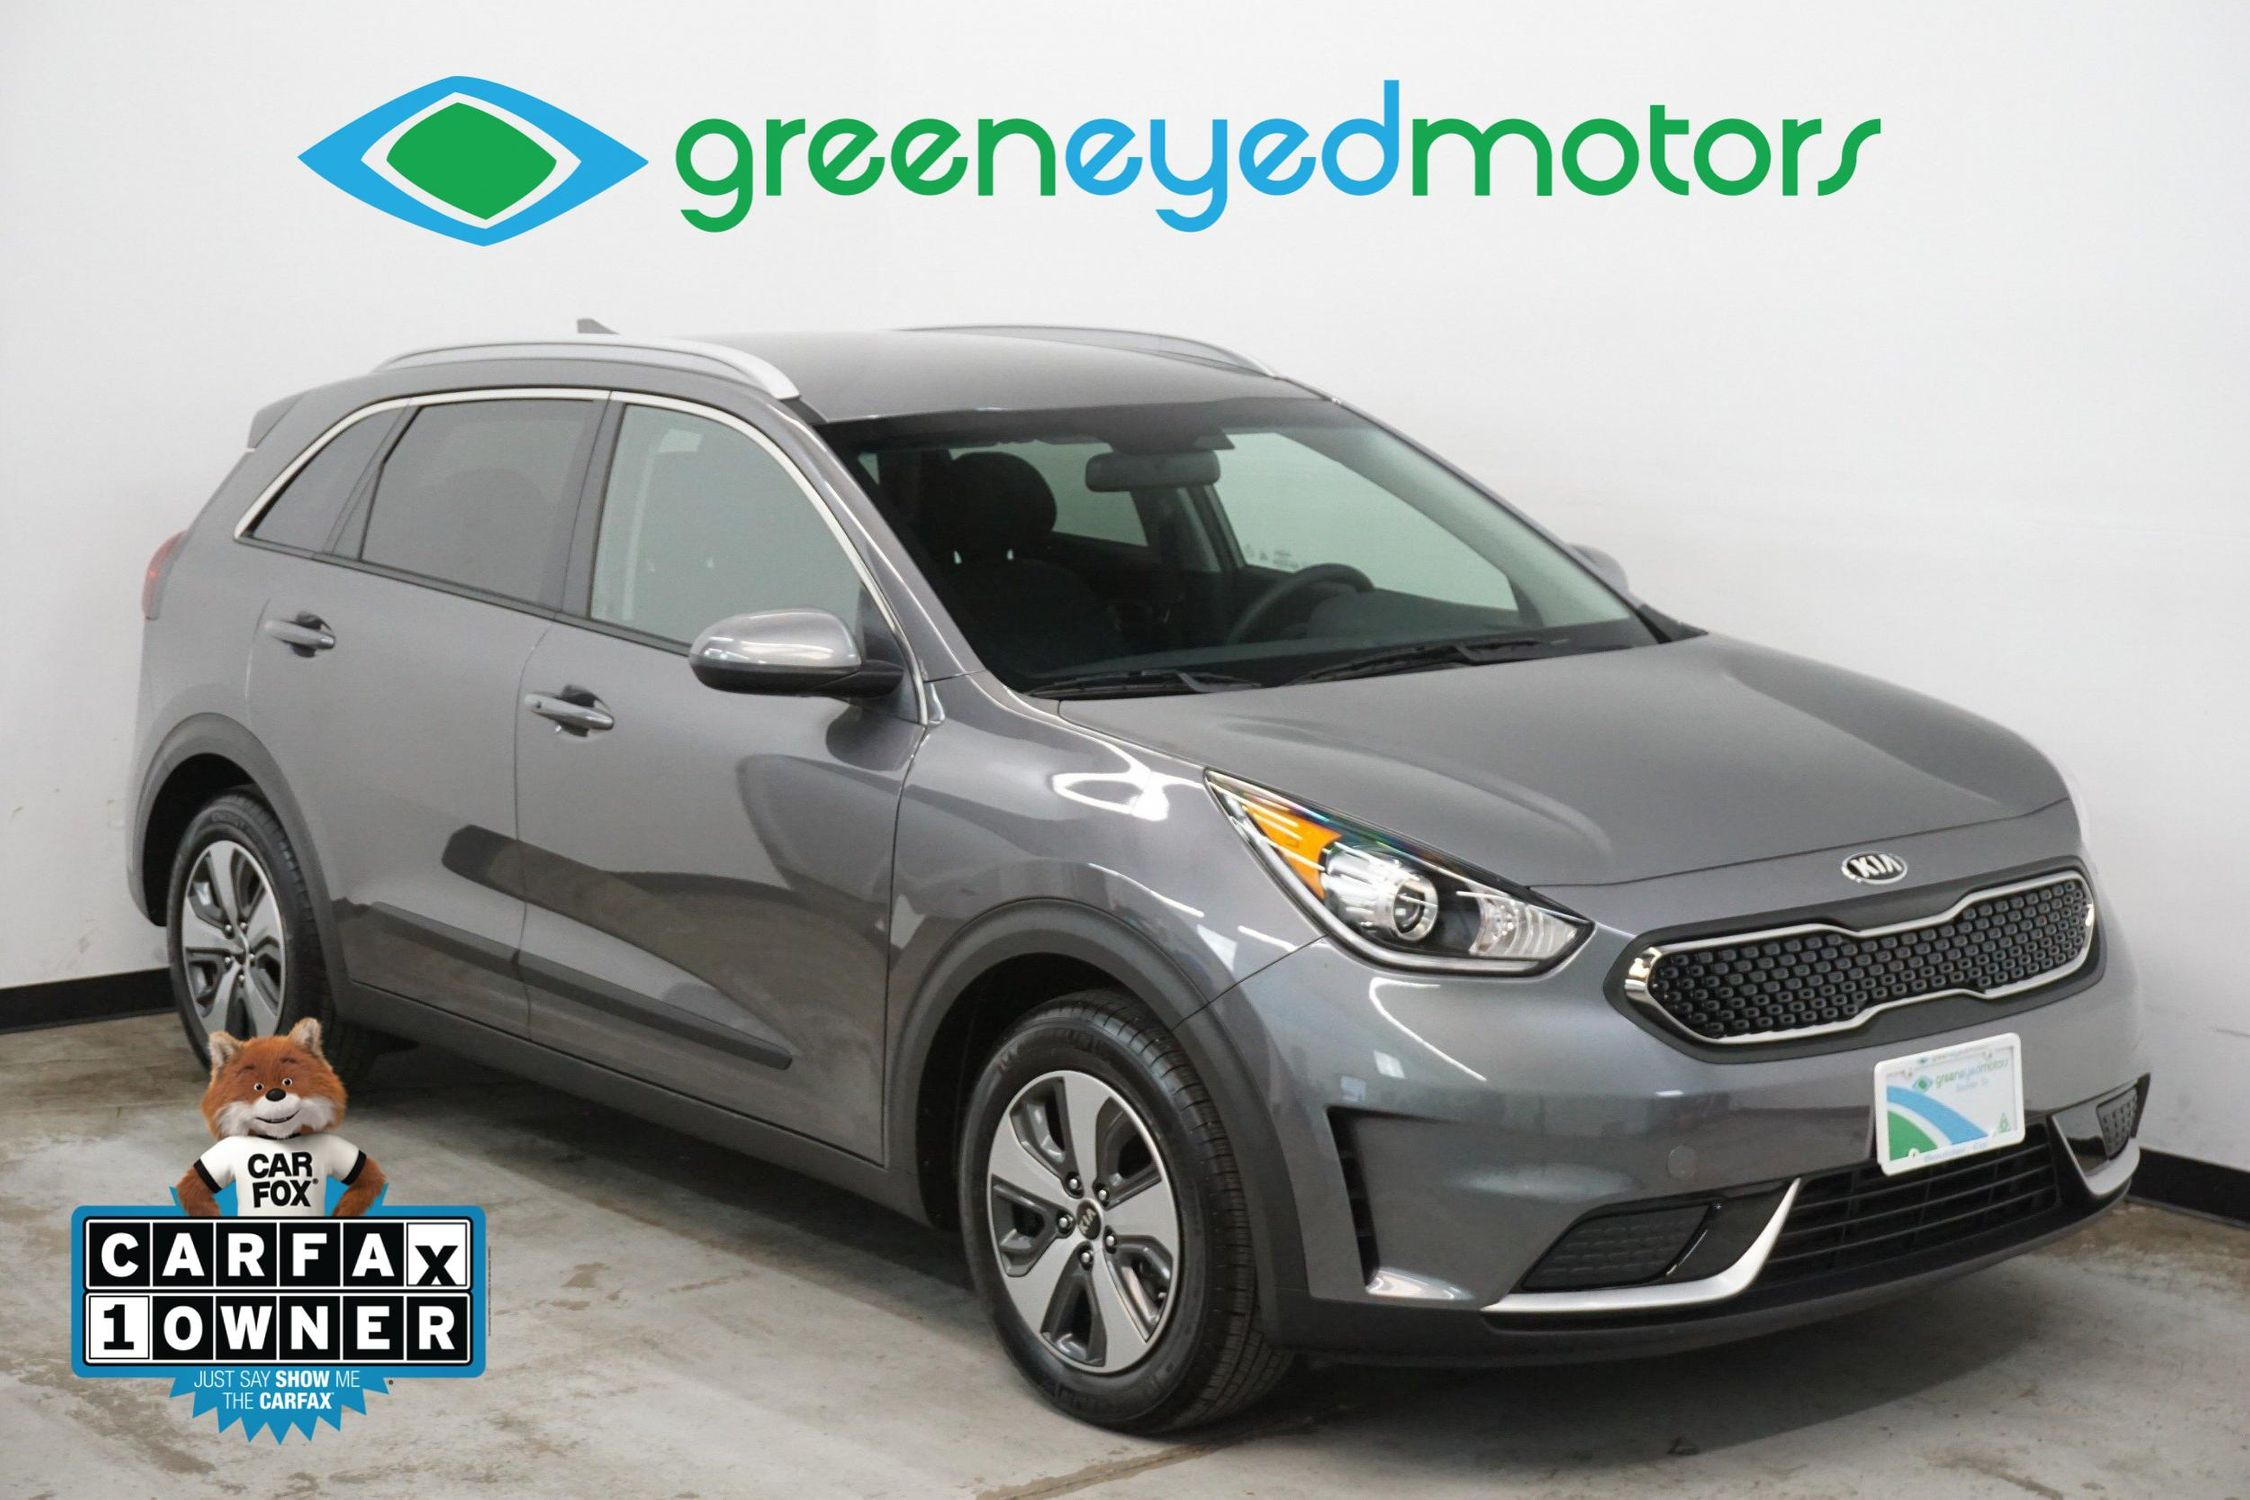 2018 Kia Niro Lx Hybrid Green Eyed Motors Rear View Camera 51 Mpg Highway